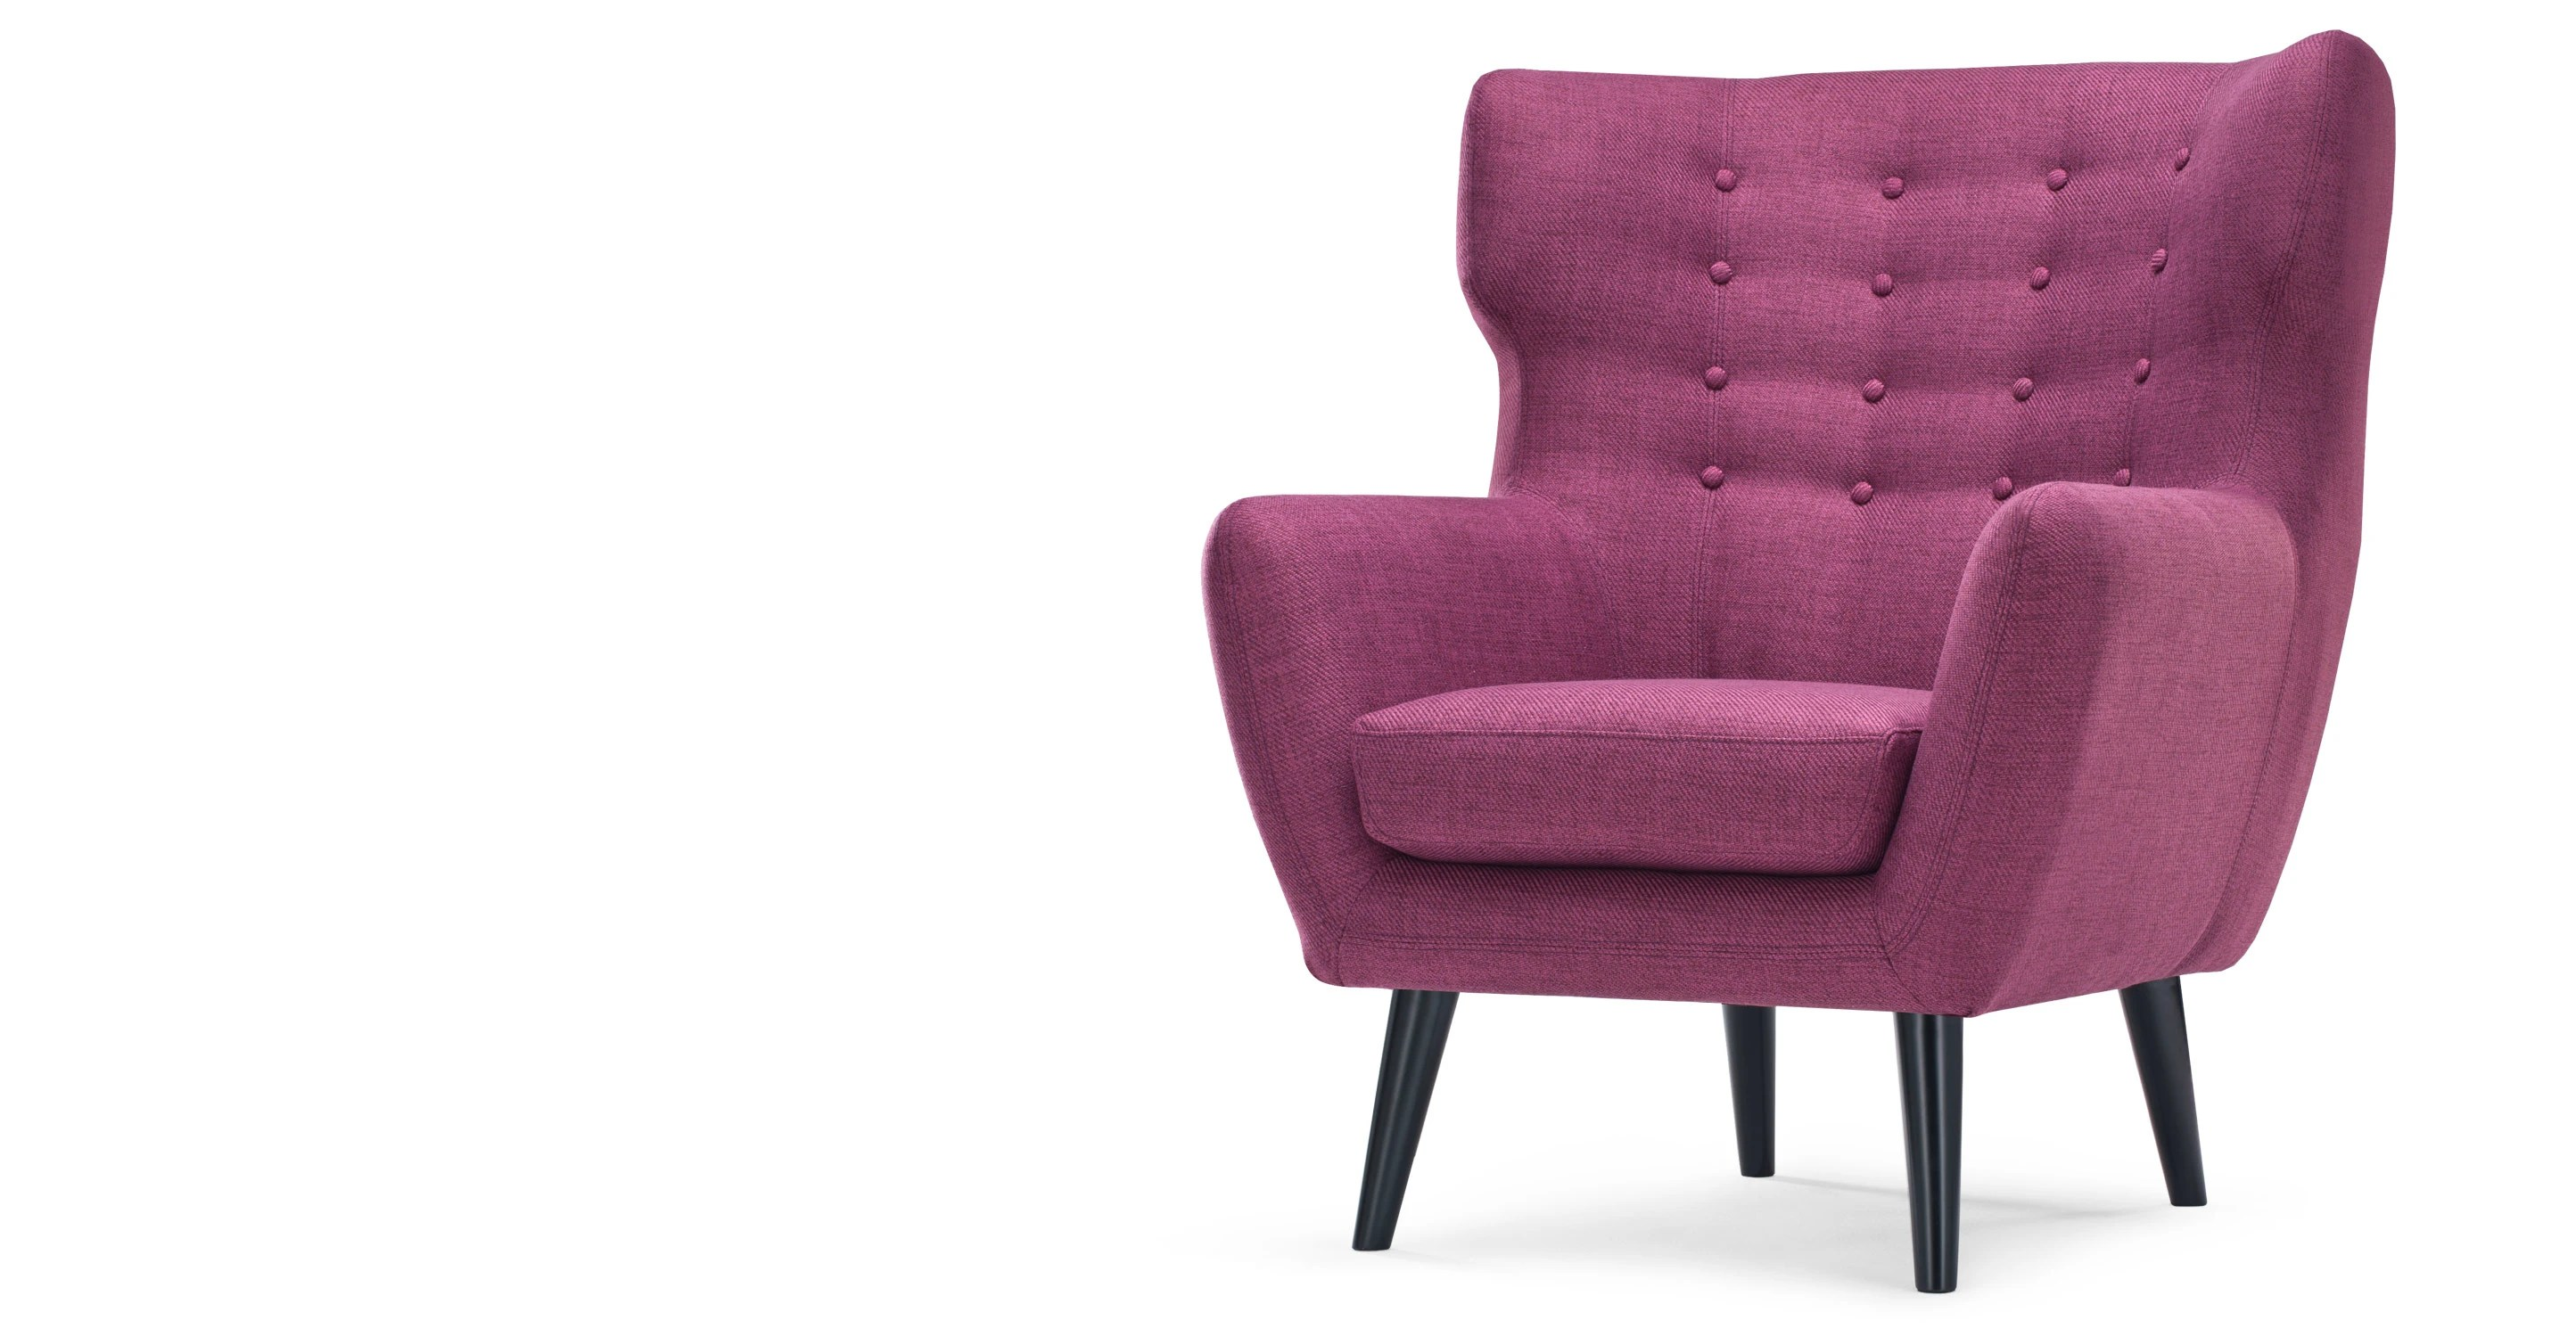 purple high chair bean bag at aldi kubrick wing back in plum made